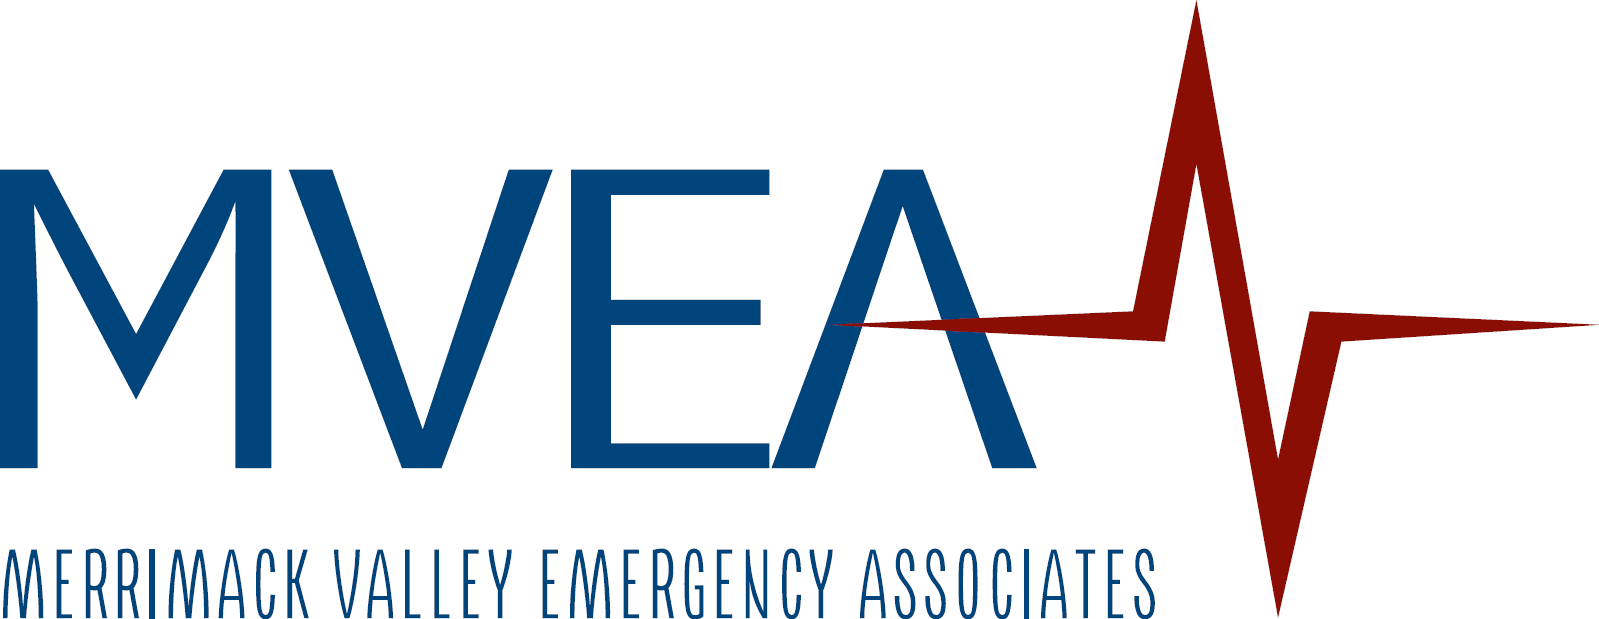 Merrimack Valley Emergency Associates Logo